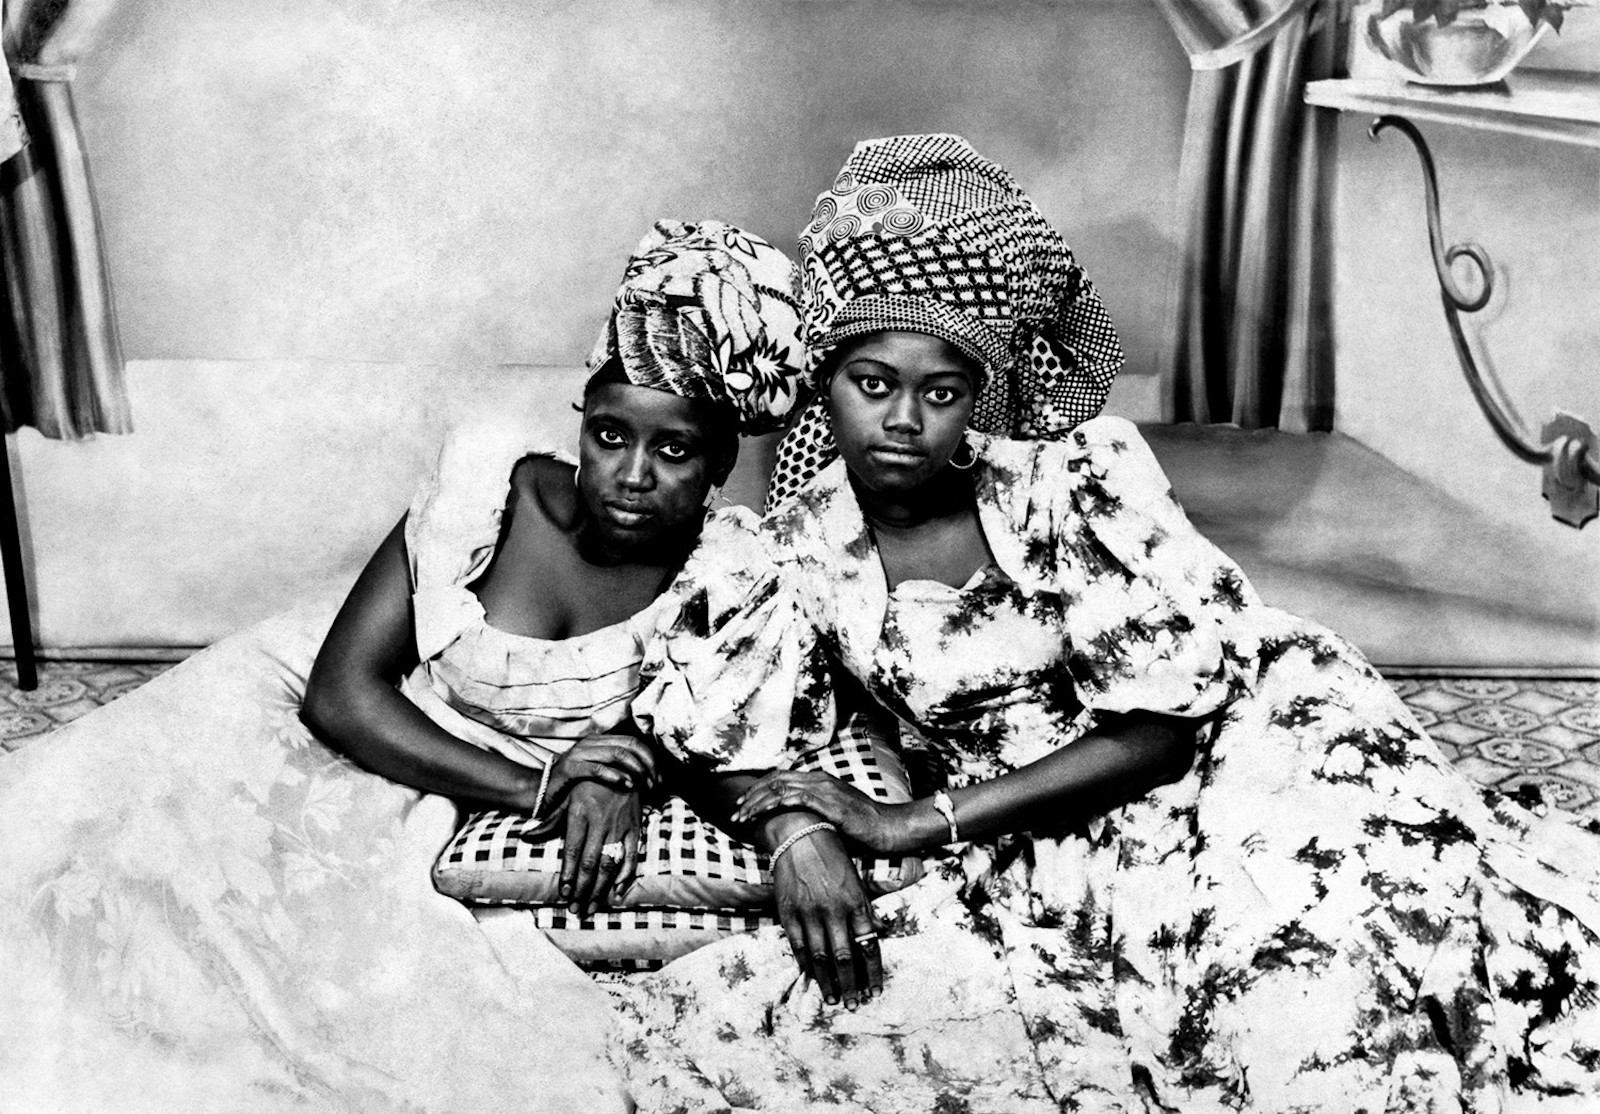 Mama Casset, Seydou Keita , African Art, African Photography, Black Photography, KOLUMN Magazine, KOLUMN, KINDR'D Magazine, KINDR'D, Willoughby Avenue, Wriit,